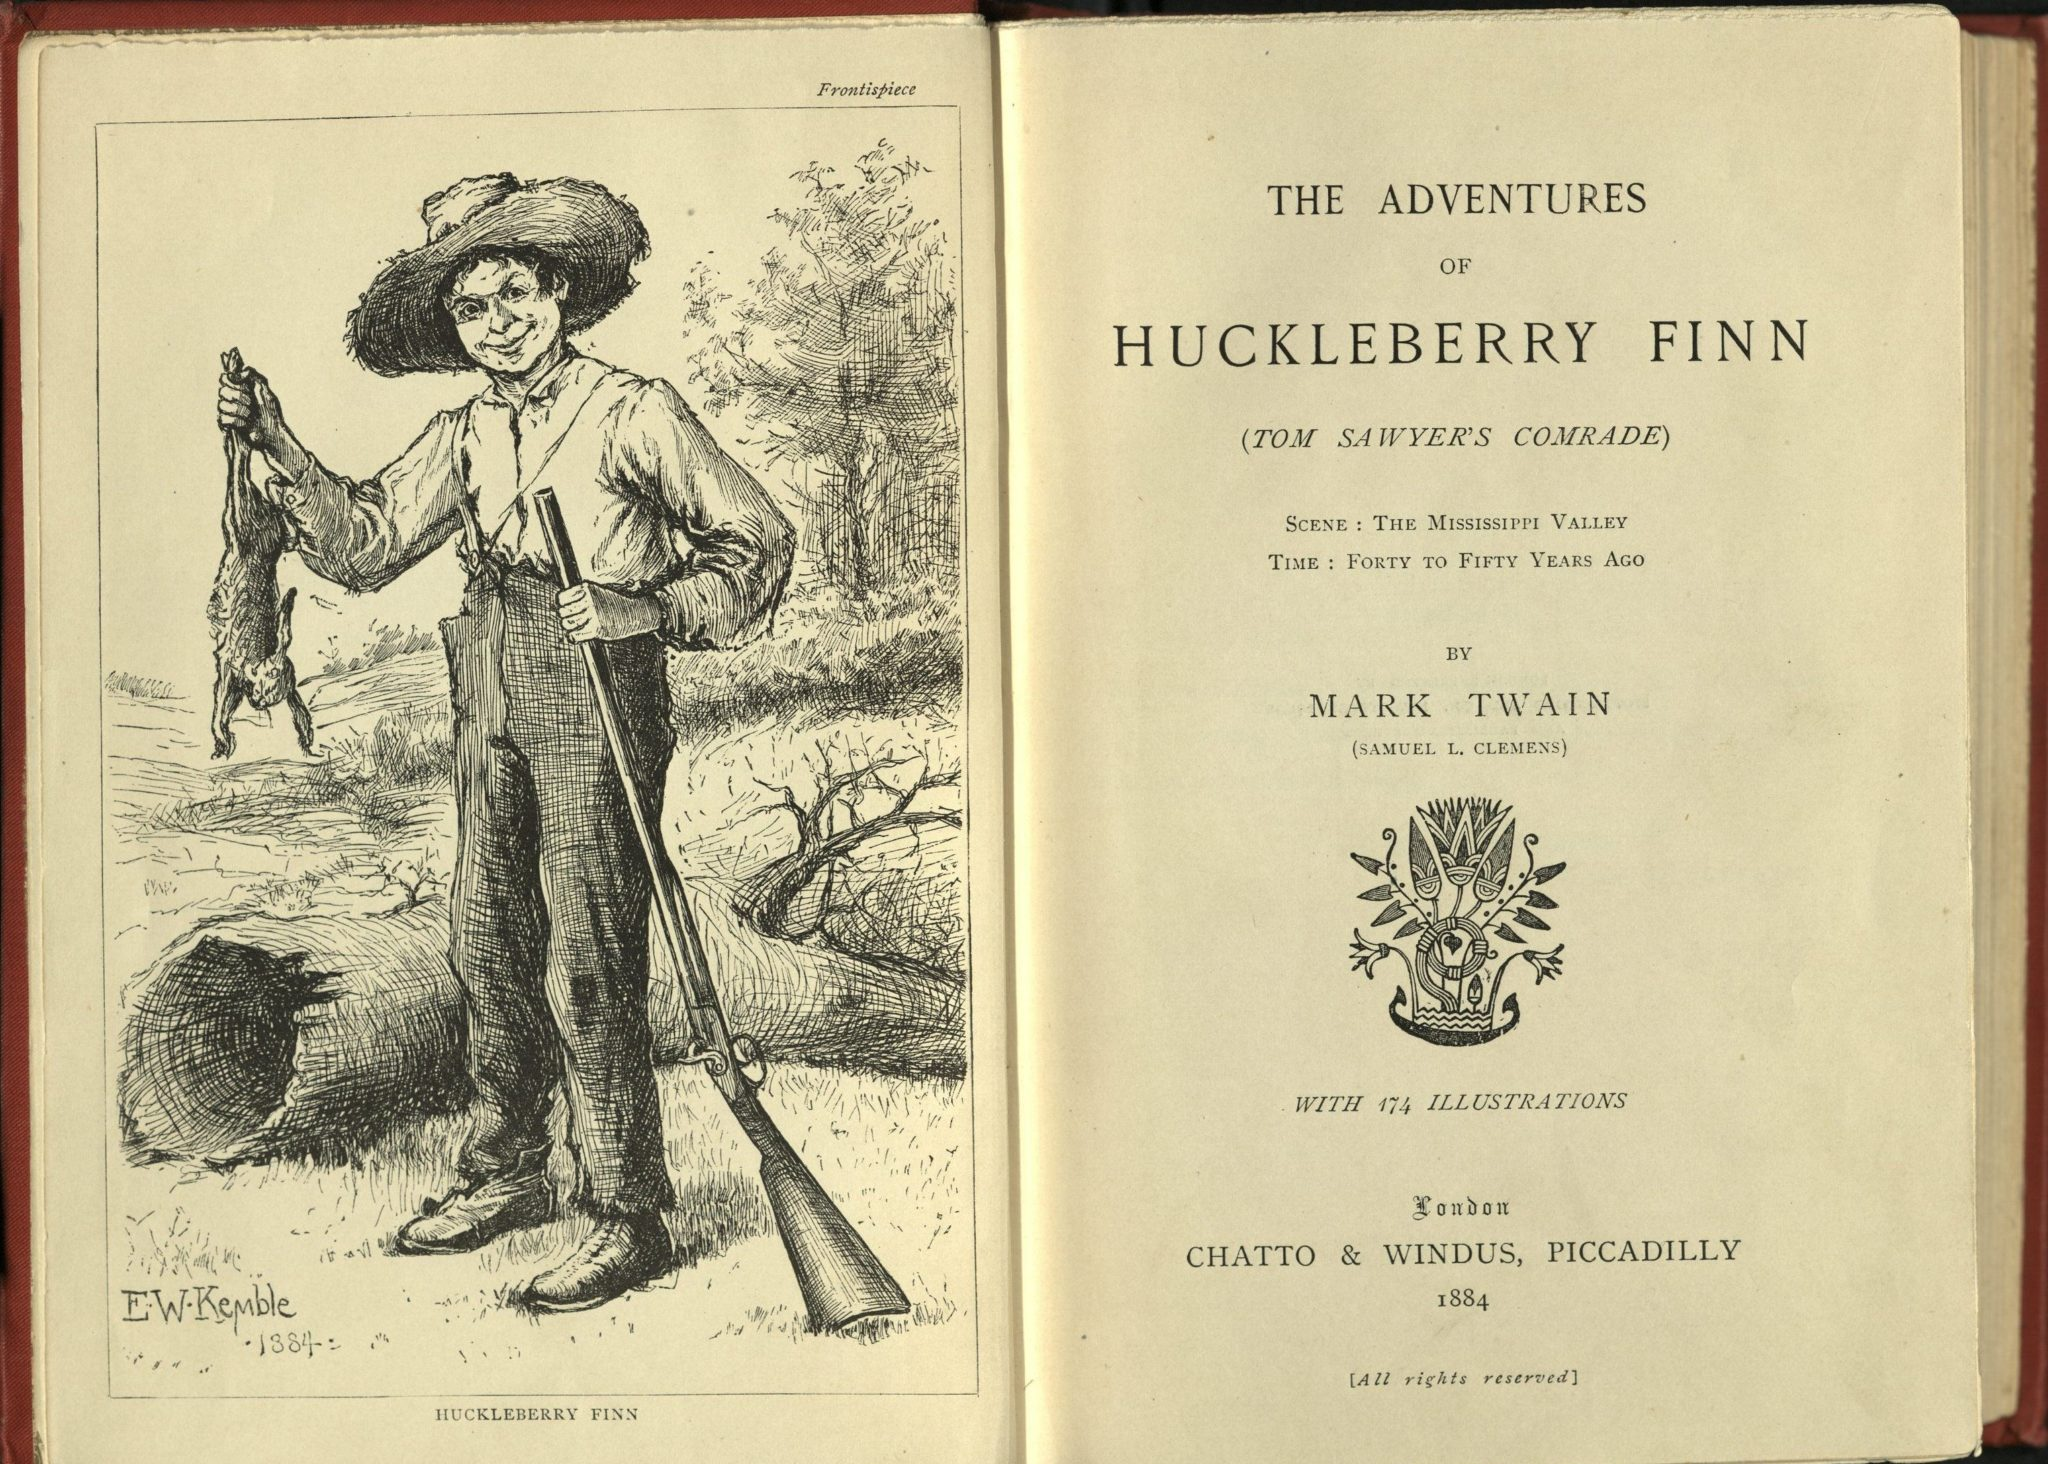 hucklberry finn essays The huckleberry finn essay provides an idea about the adventure of huck and jim and nonsensicality of society's attitudes toward slavery, religion and education.